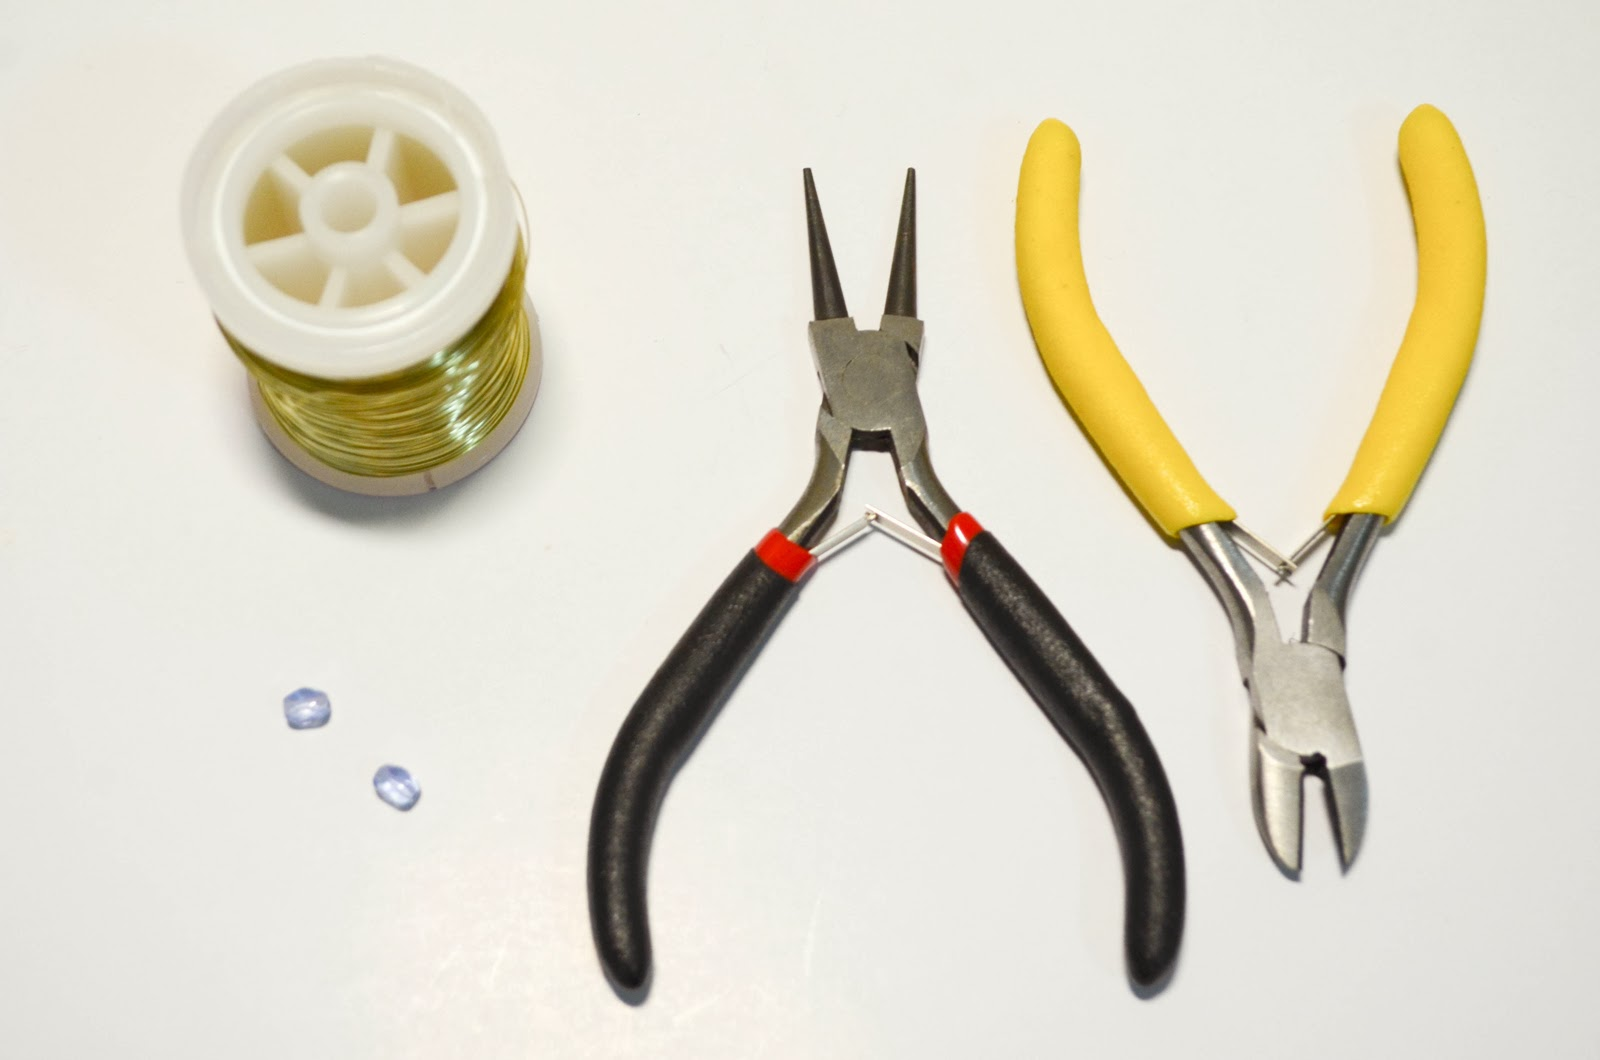 wire gold bead two blue round nose plier cutter